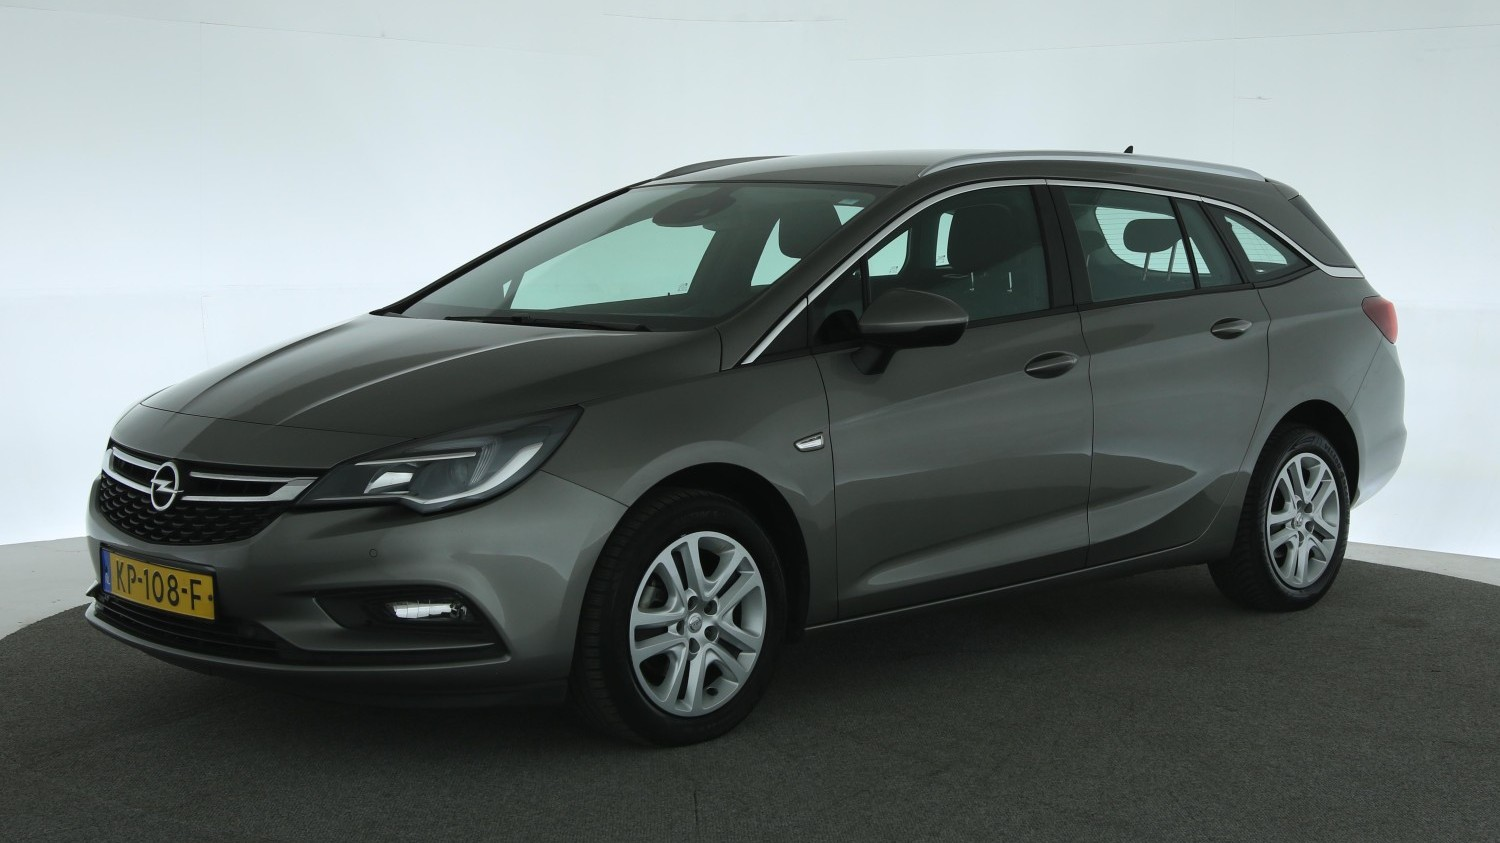 Opel Astra Station 2016 KP-108-F 1